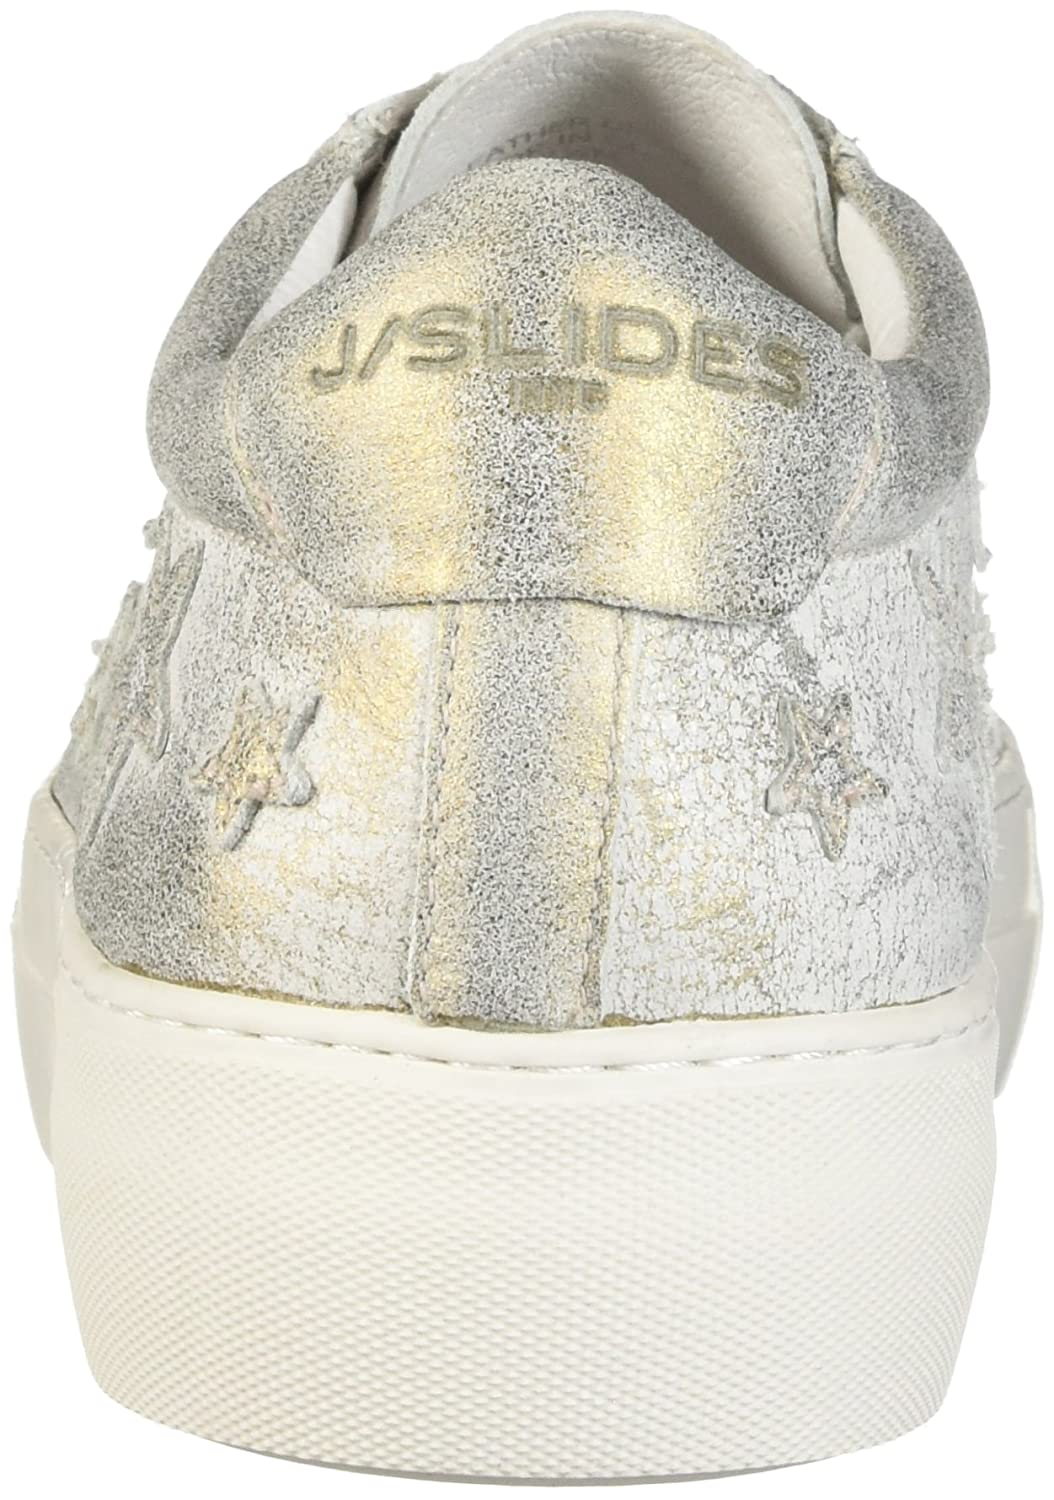 J Slides Women's Apostle Sneaker B076DQK1FT 6.5 B(M) US|Bronze